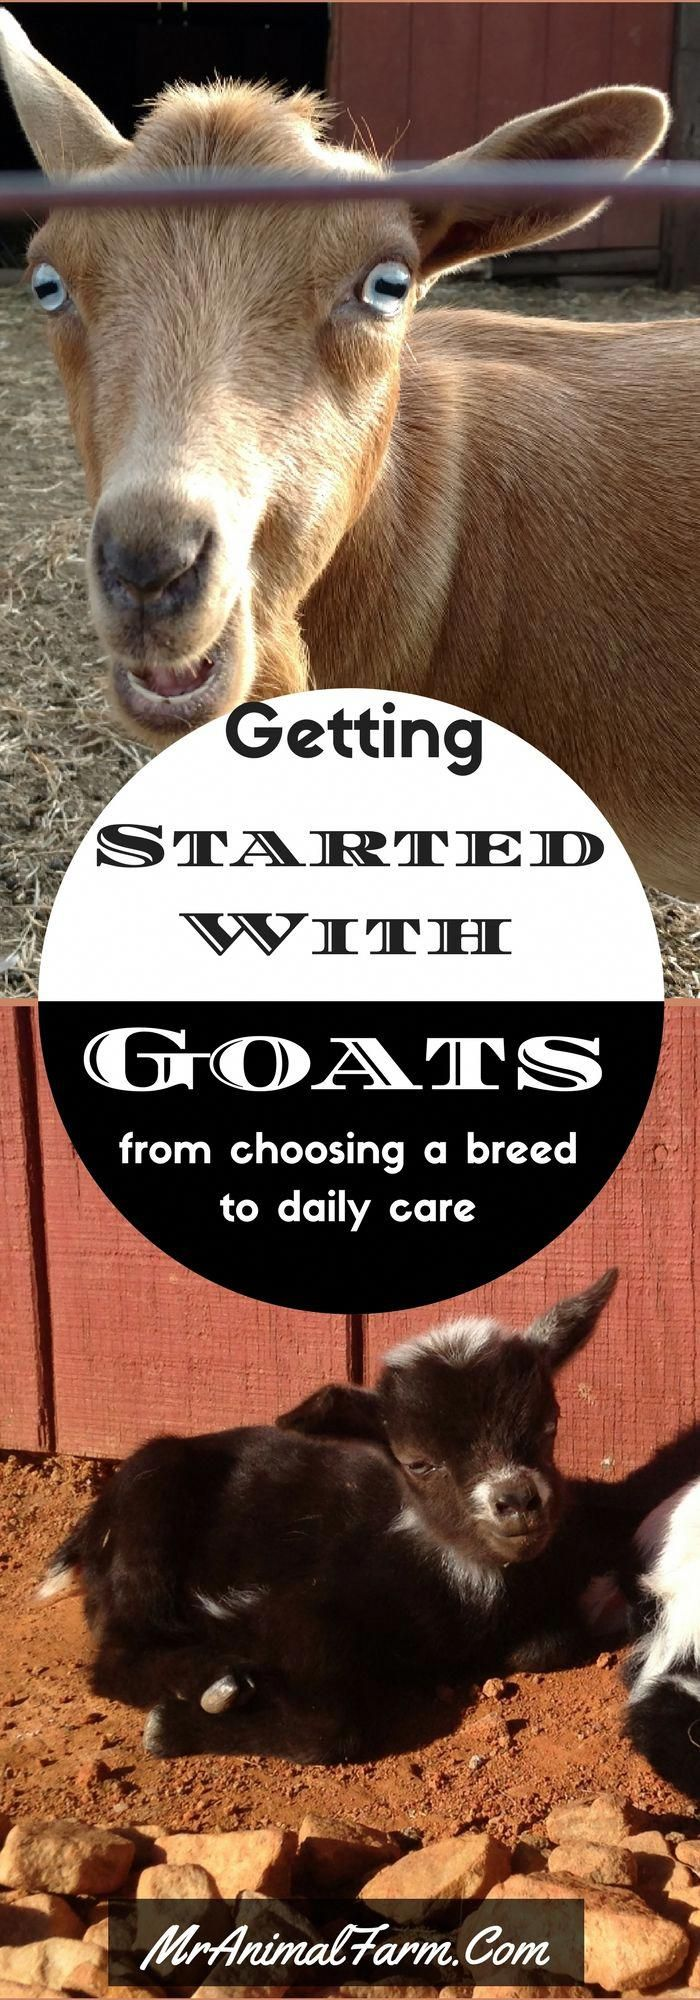 Wanna get started raising goats? Find out how you can ...